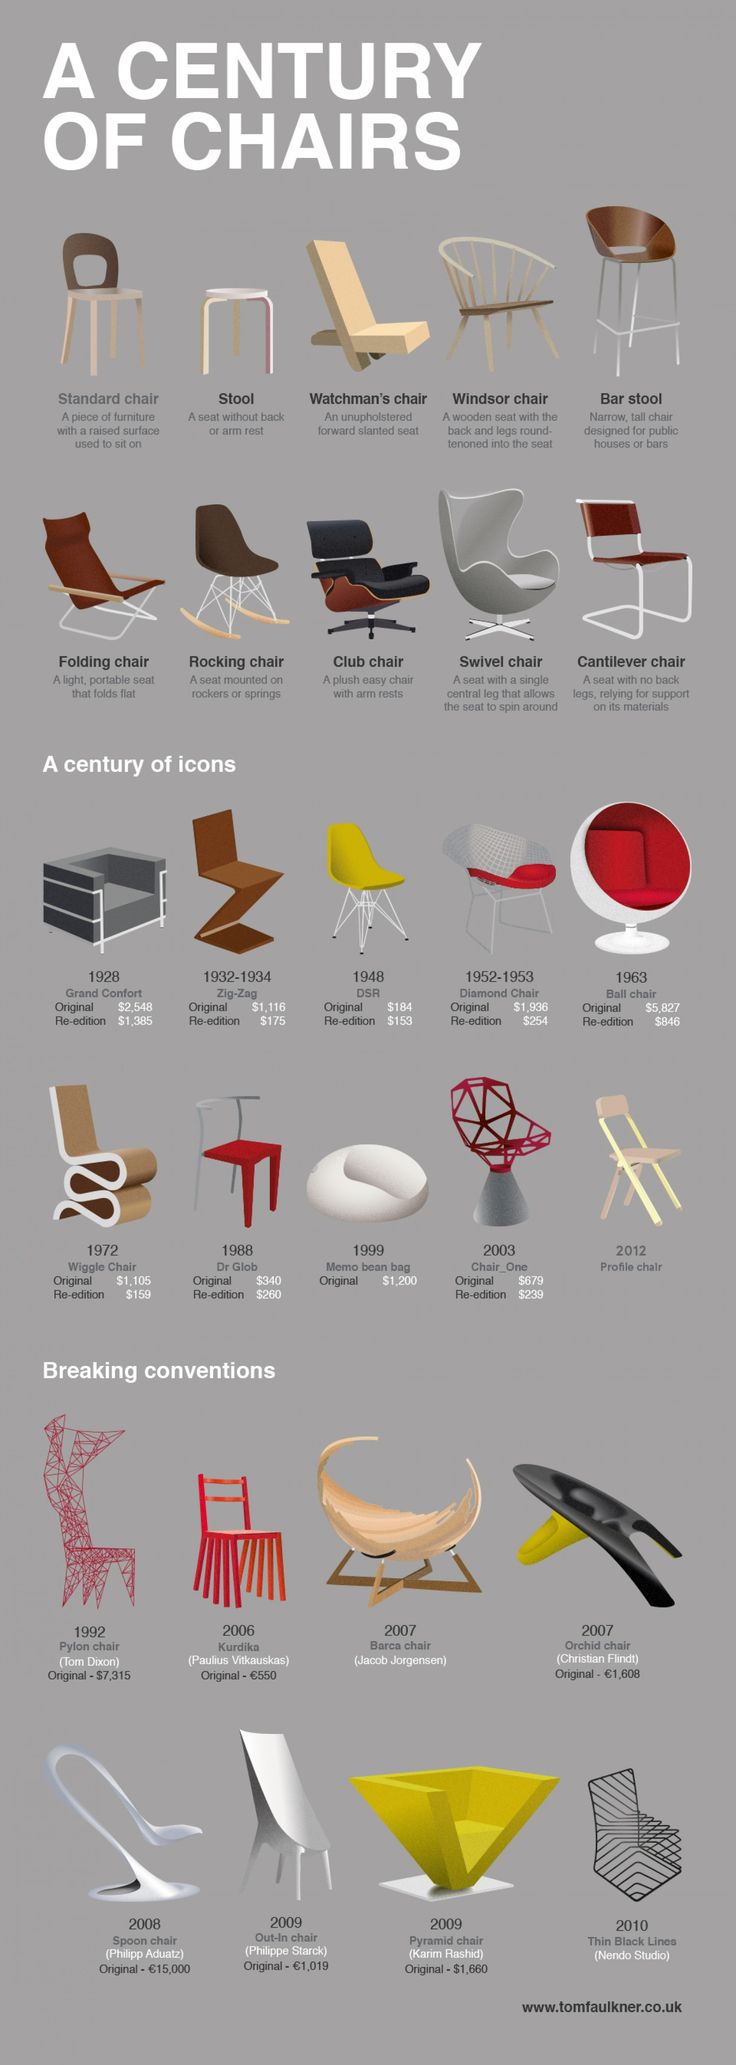 A Century of Chairs - Tipsögraphic